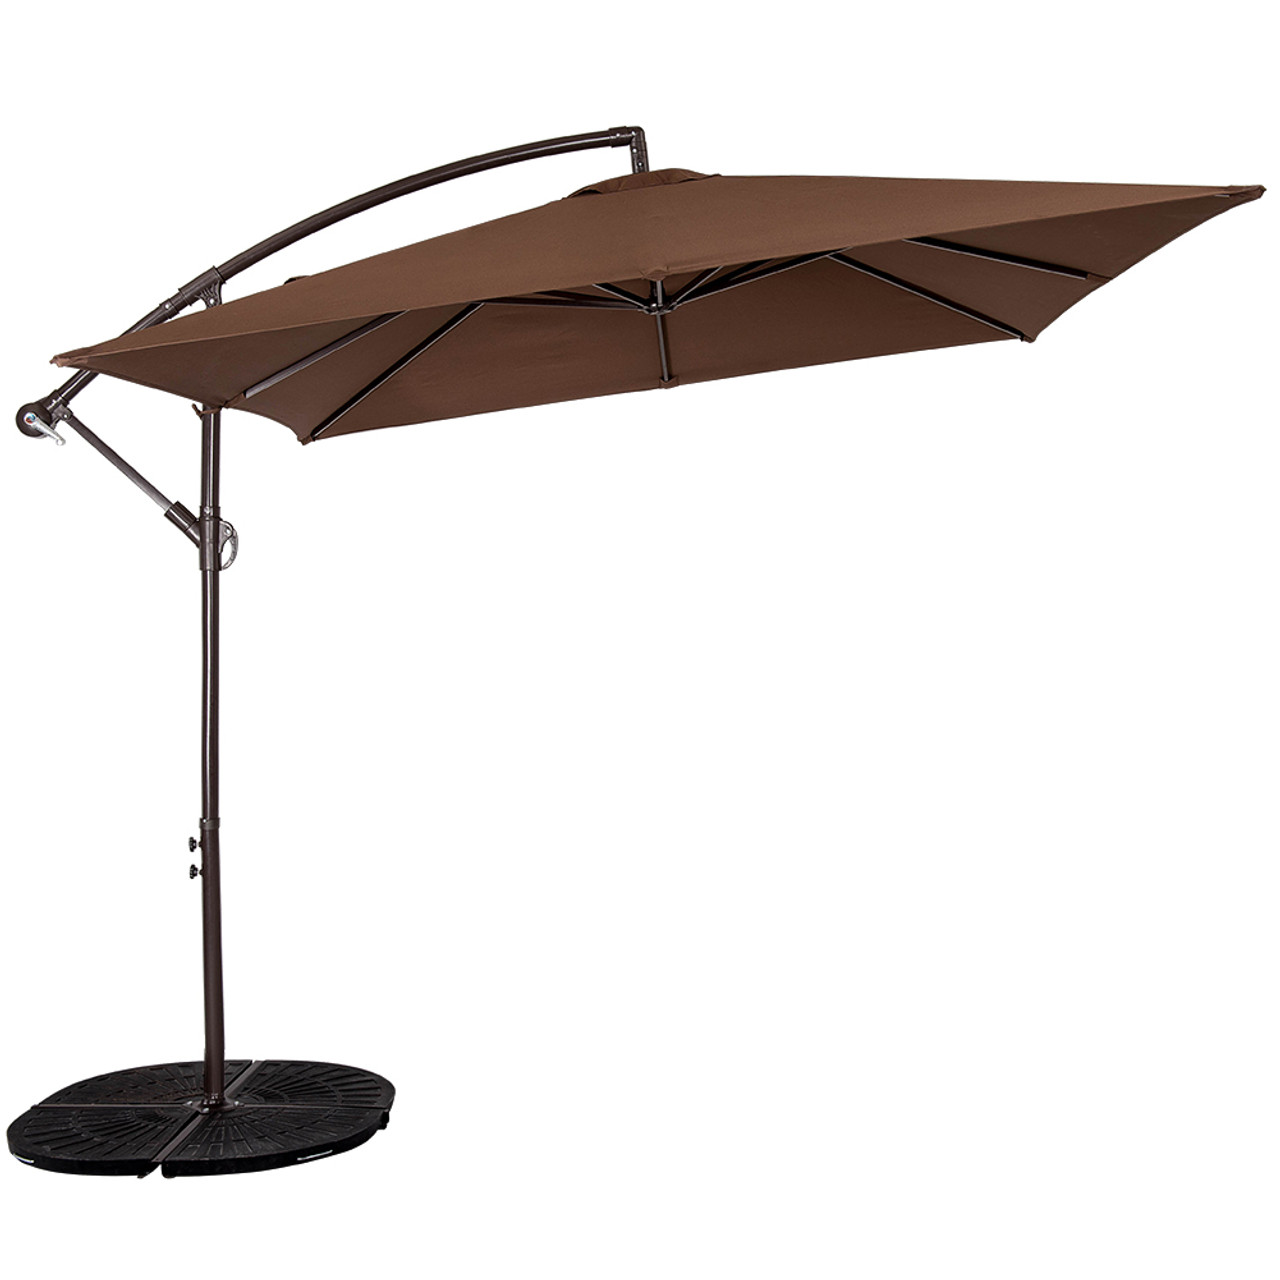 outdoor white furniture cantilever umbrella costco with bamboo base large using beautiful hayneedle patio umbrellas offset at